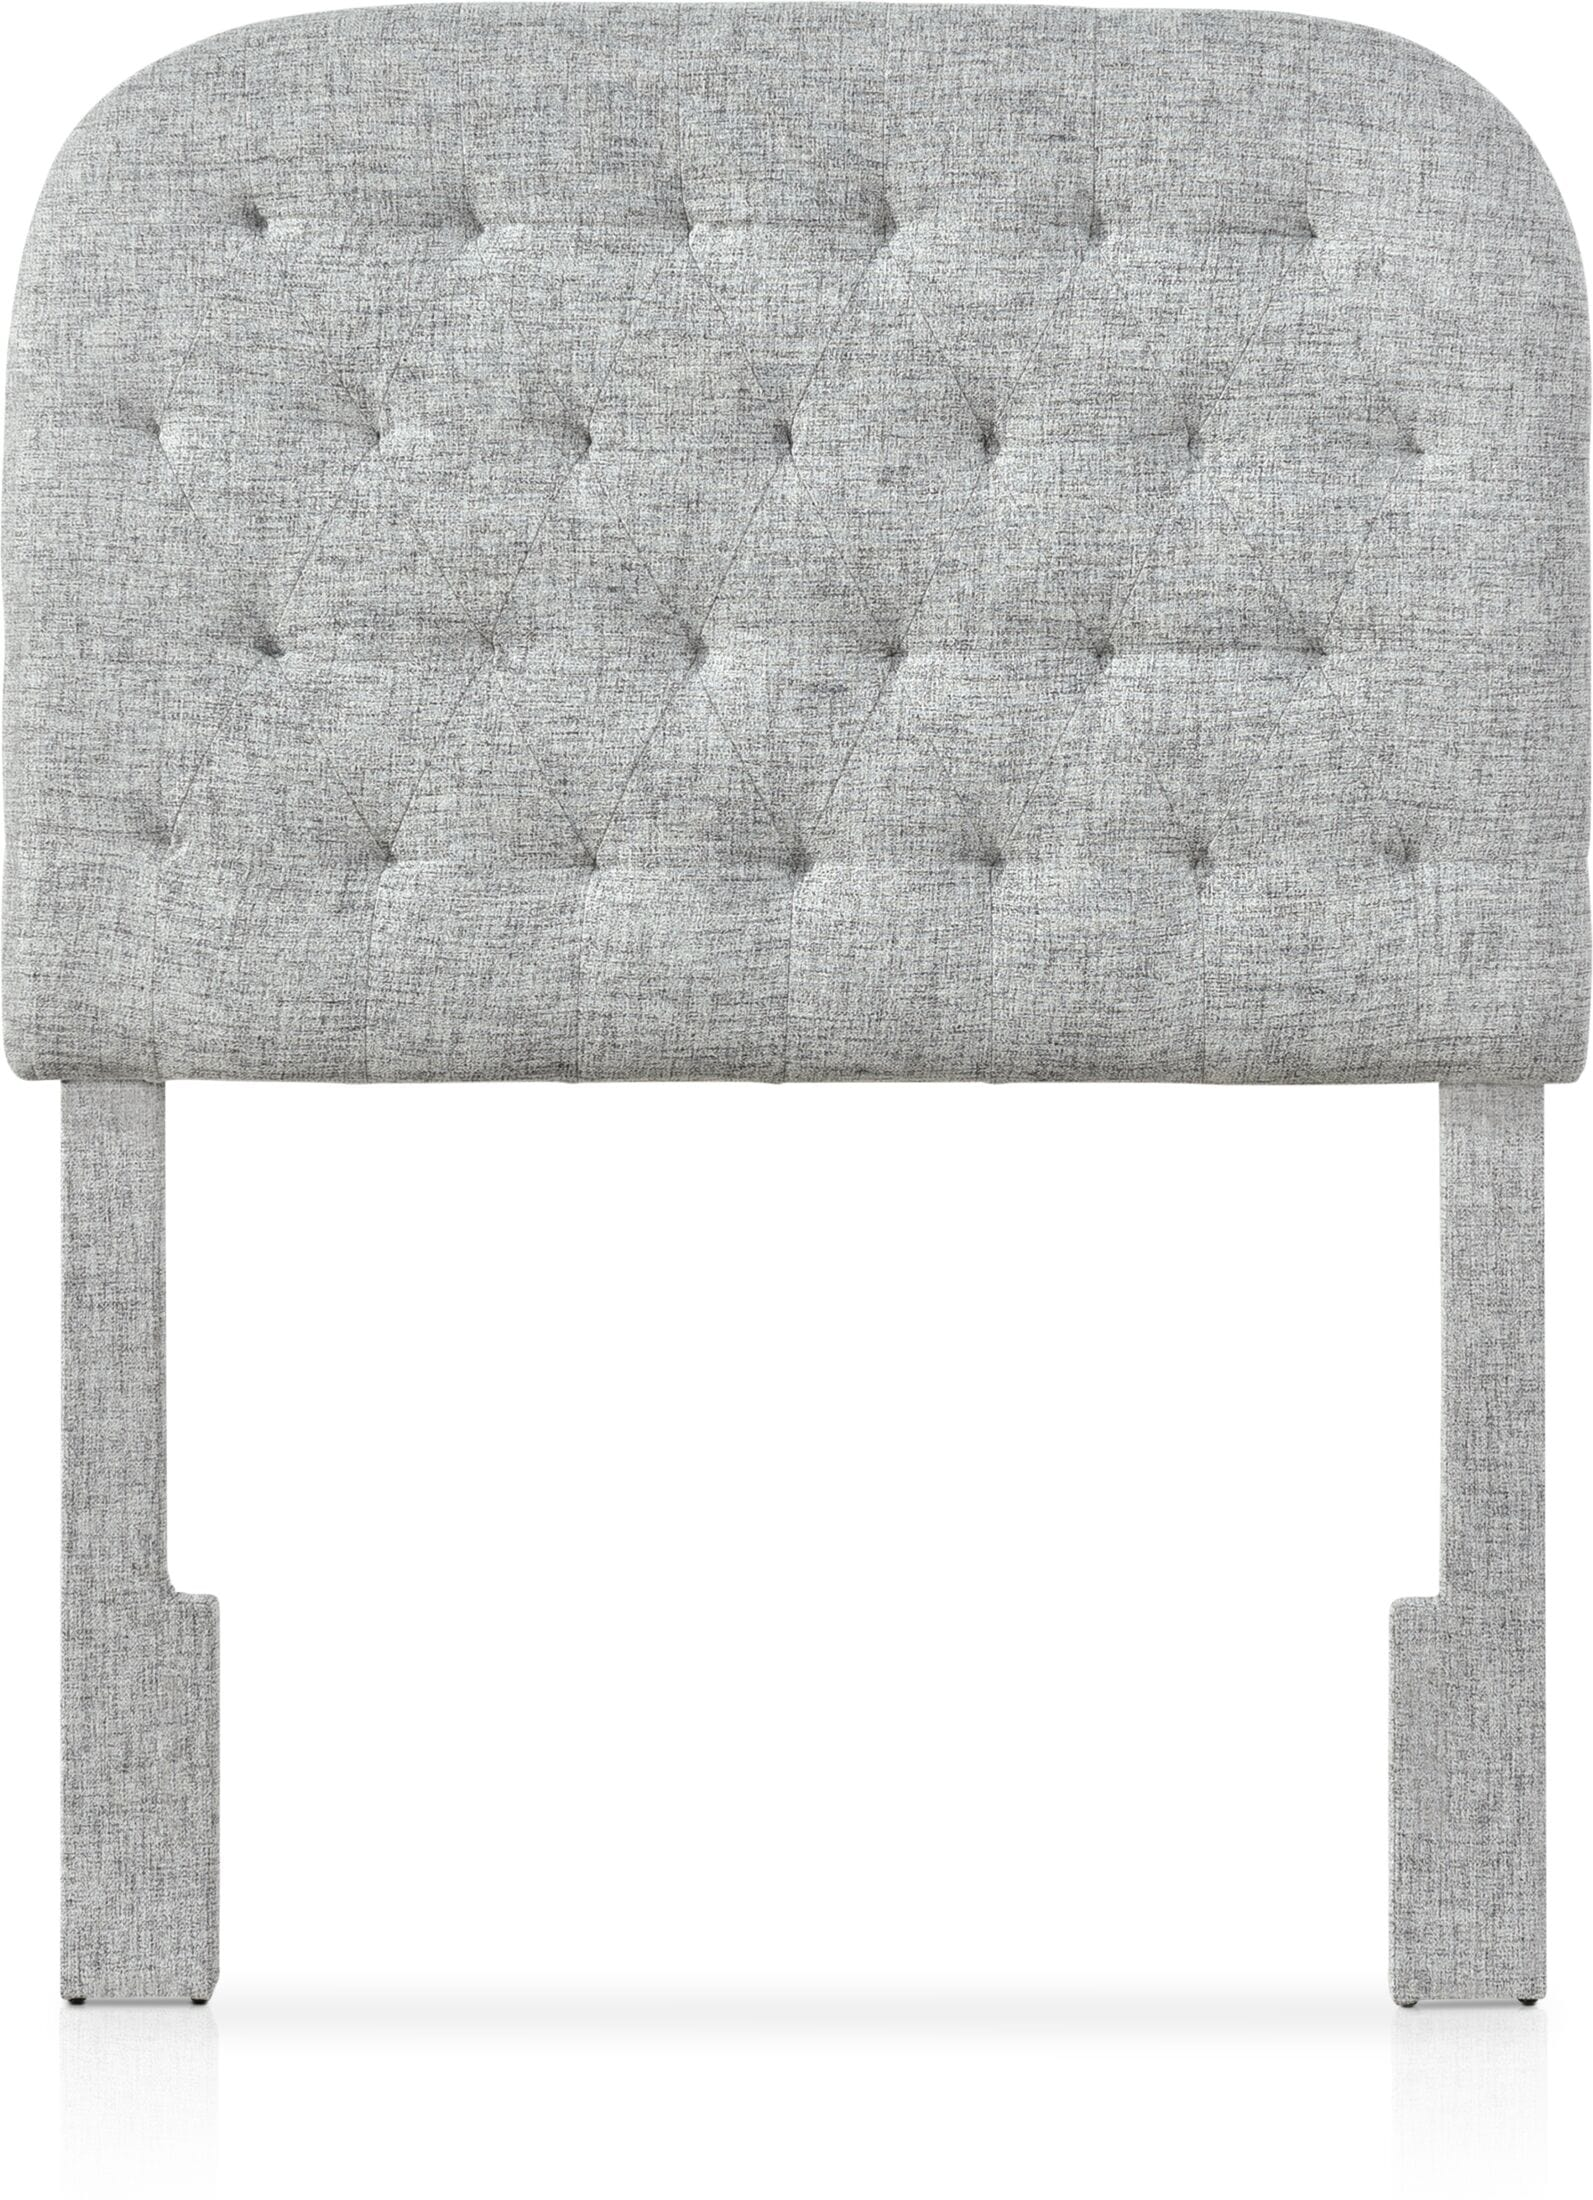 Bedroom Furniture - Ivy Upholstered Headboard